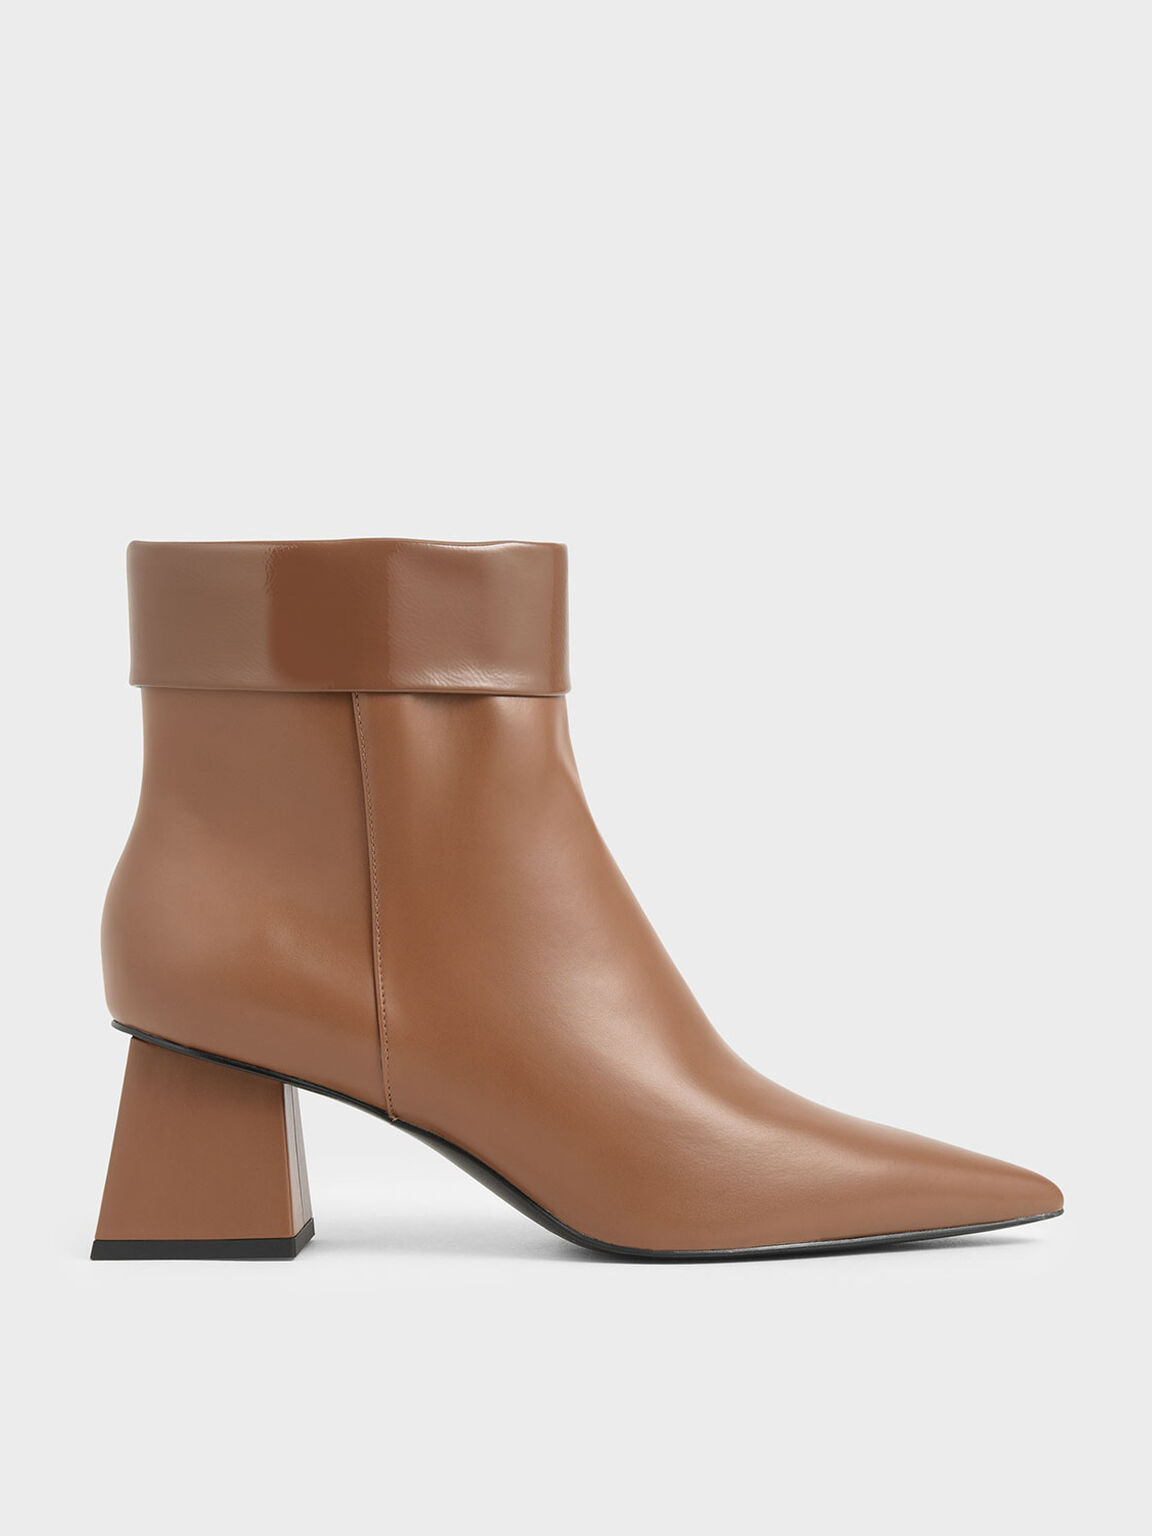 Wrinkled Patent Ankle Boots, Brown, hi-res